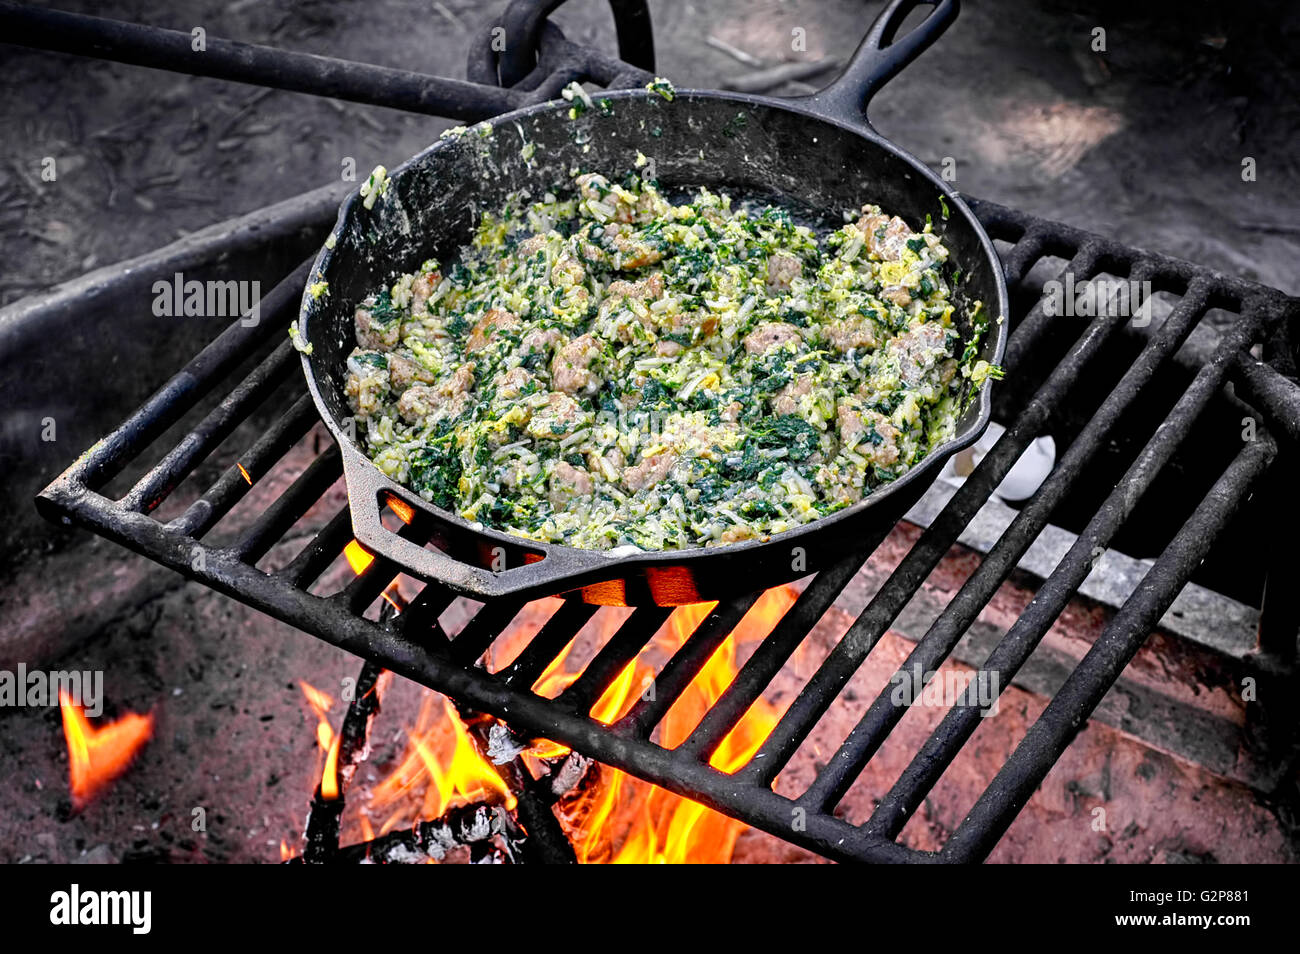 Sausage and spinach egg scramble cooked on a campfire in cast iron skillet - Stock Image